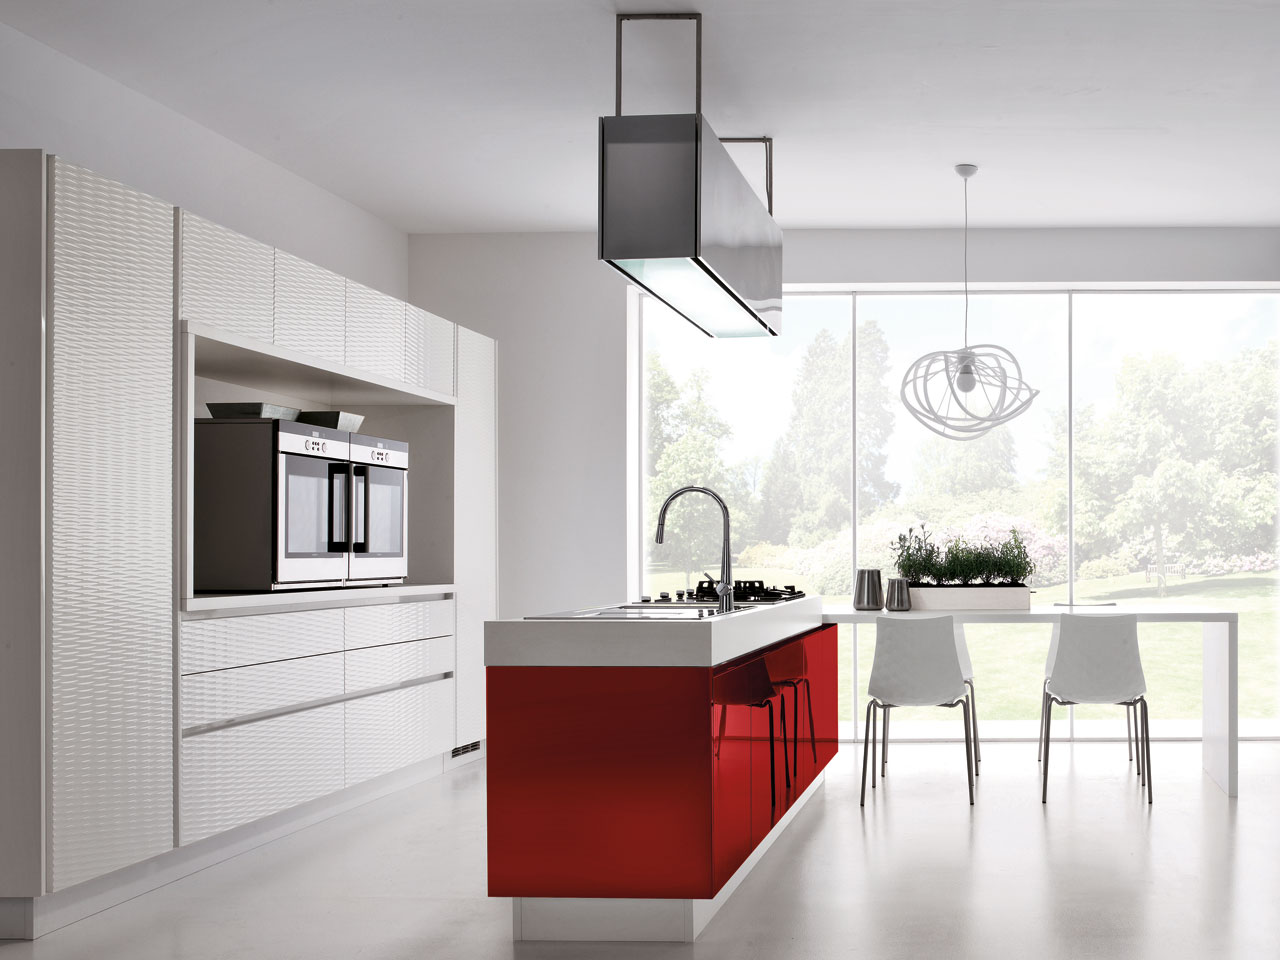 6 Ideas To Help Modernize Your Kitchen Cabinets